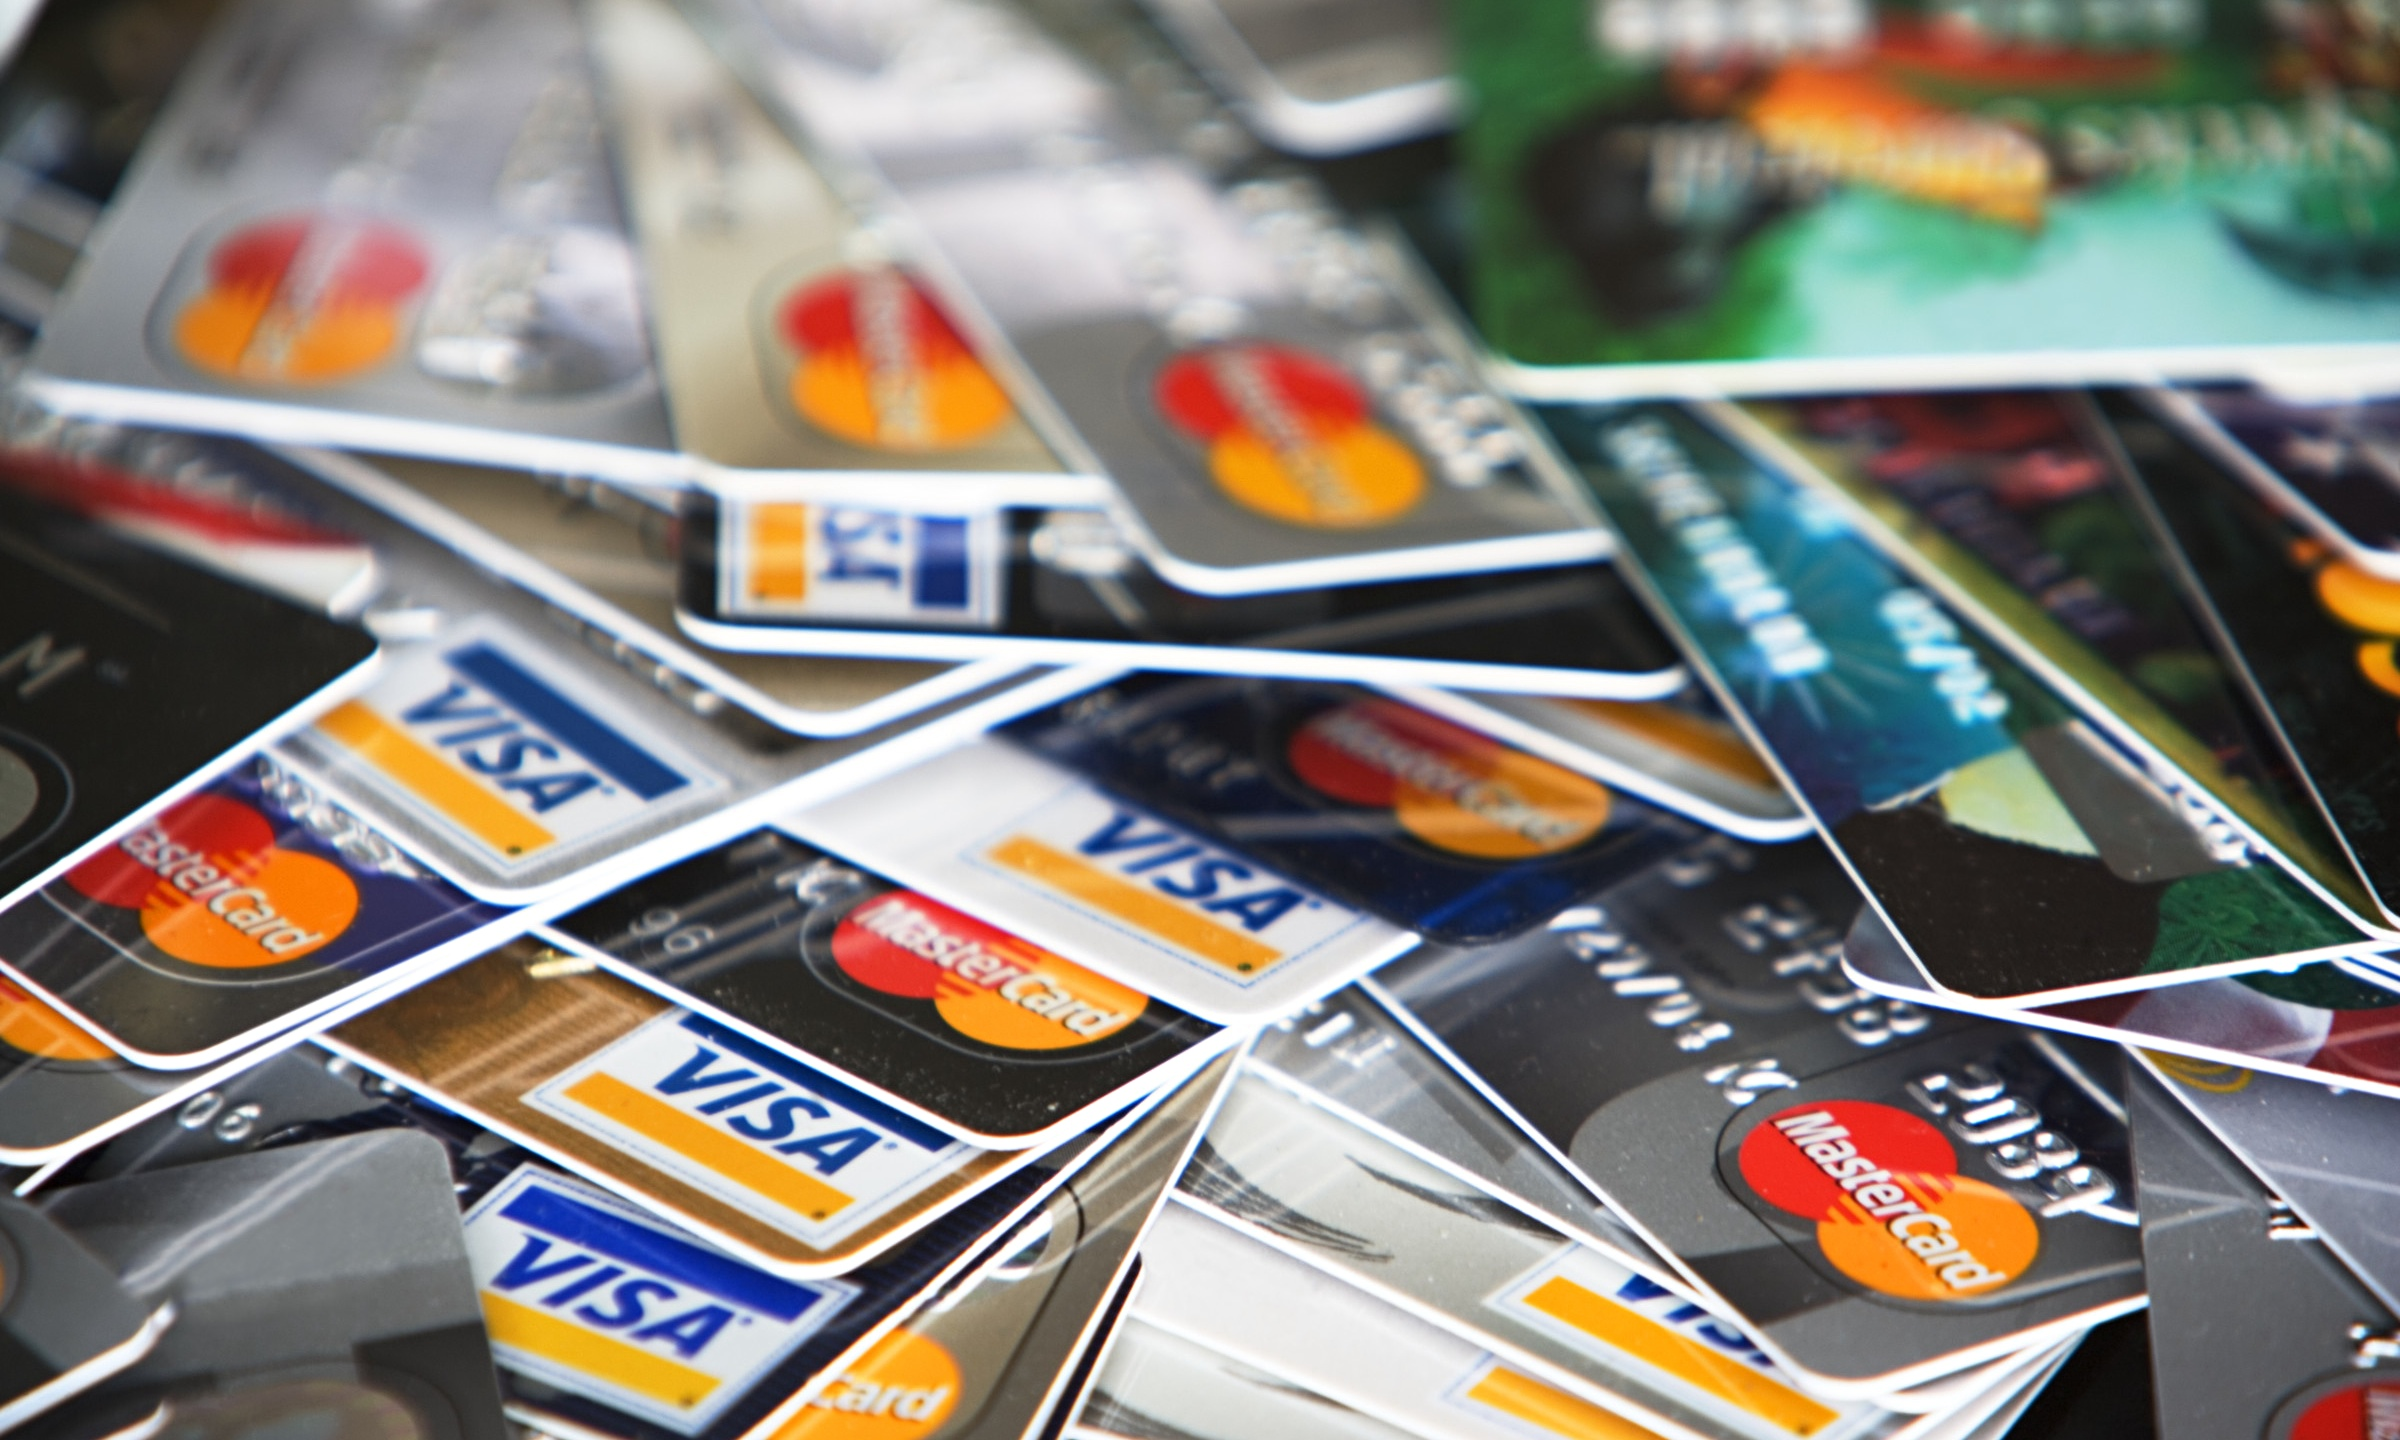 how many credit cards should you have? - cagrvalue